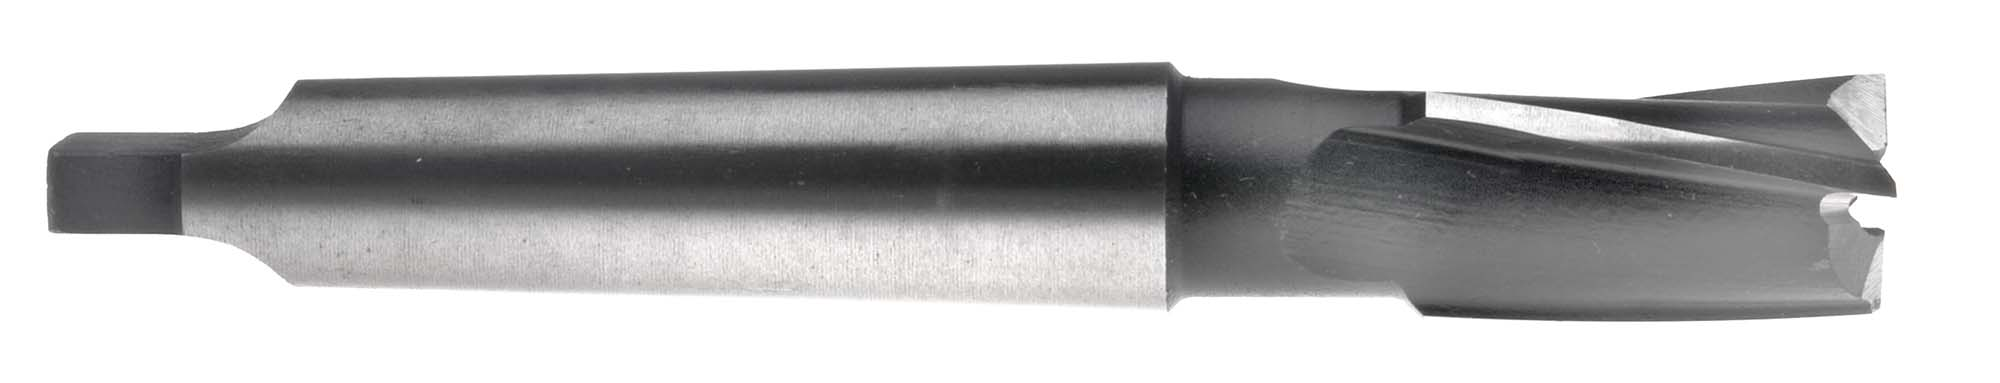 "2-1/8"" Taper Shank Counterbore, Interchangeable Pilot Type, High Speed Steel"